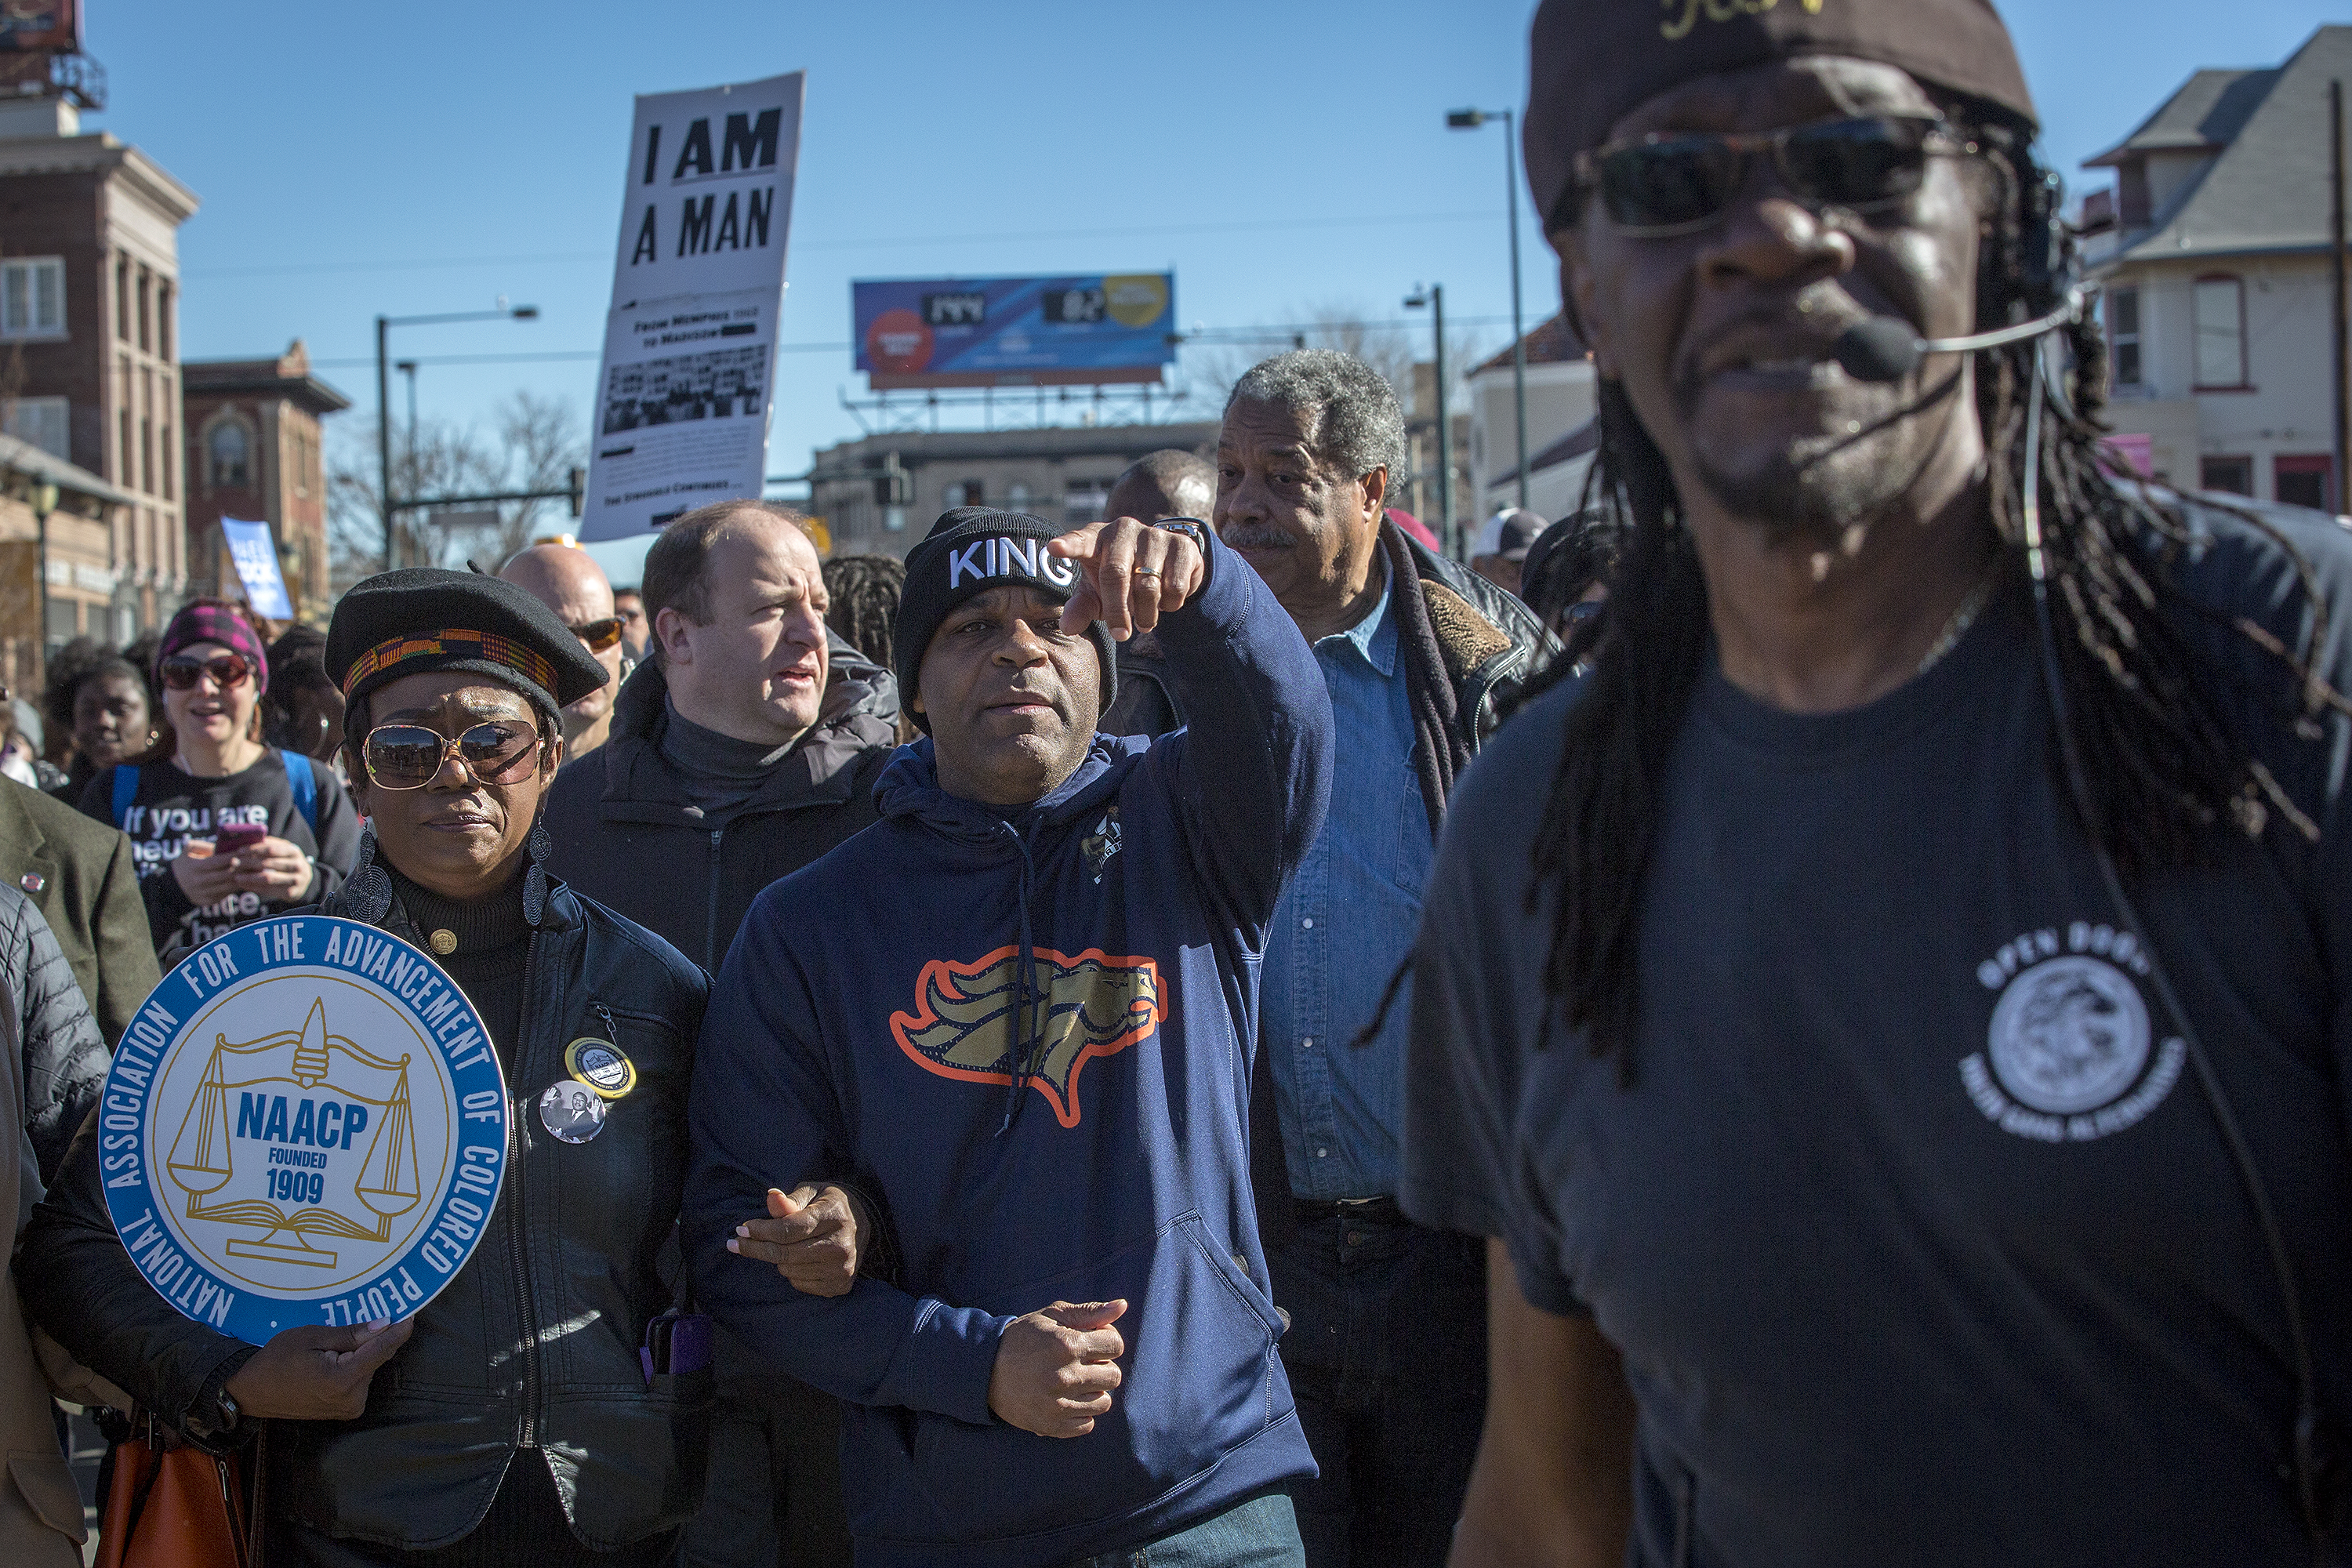 <p>Gov. Jared Polis, Denver Mayor Michael Hancock and former Mayor Wellington Webb march in the 2019 Marade on Denver's Colfax Avenue on Monday Jan. 21, 2019. The Rev. Leon Kelly, with microphone, is at right.</p>